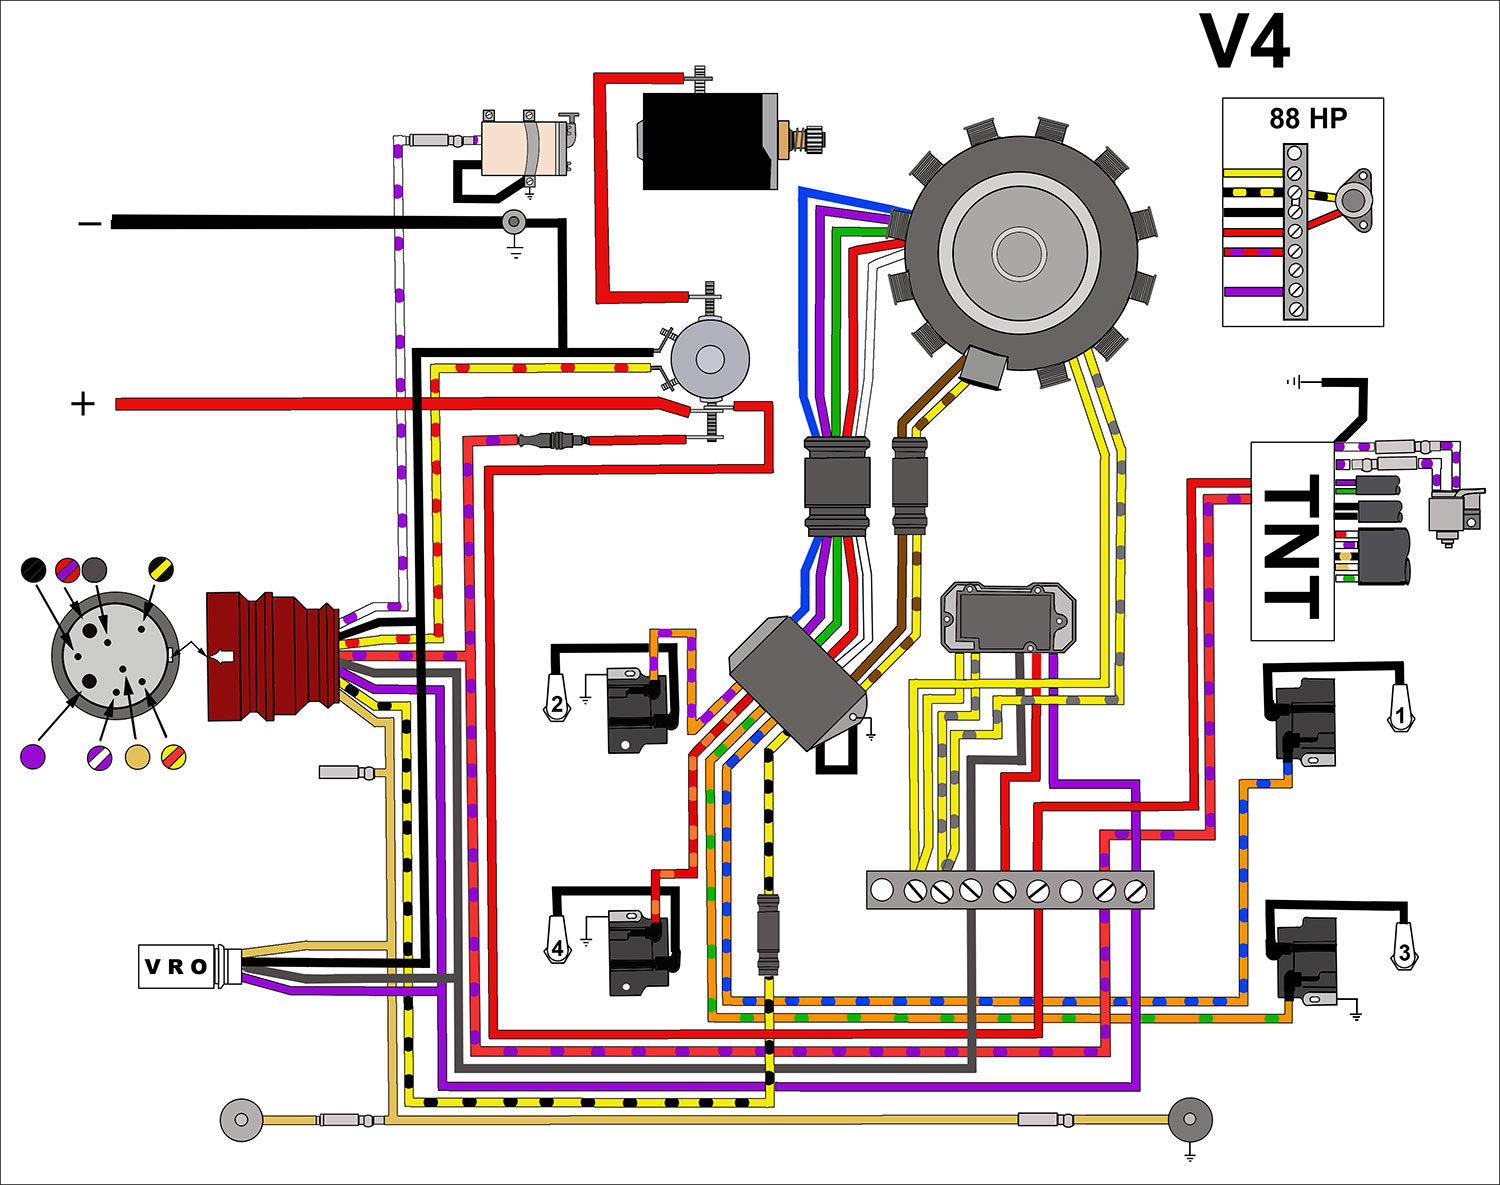 Johnson Outboard Ignition Switch Wiring Diagram from maxrules.com